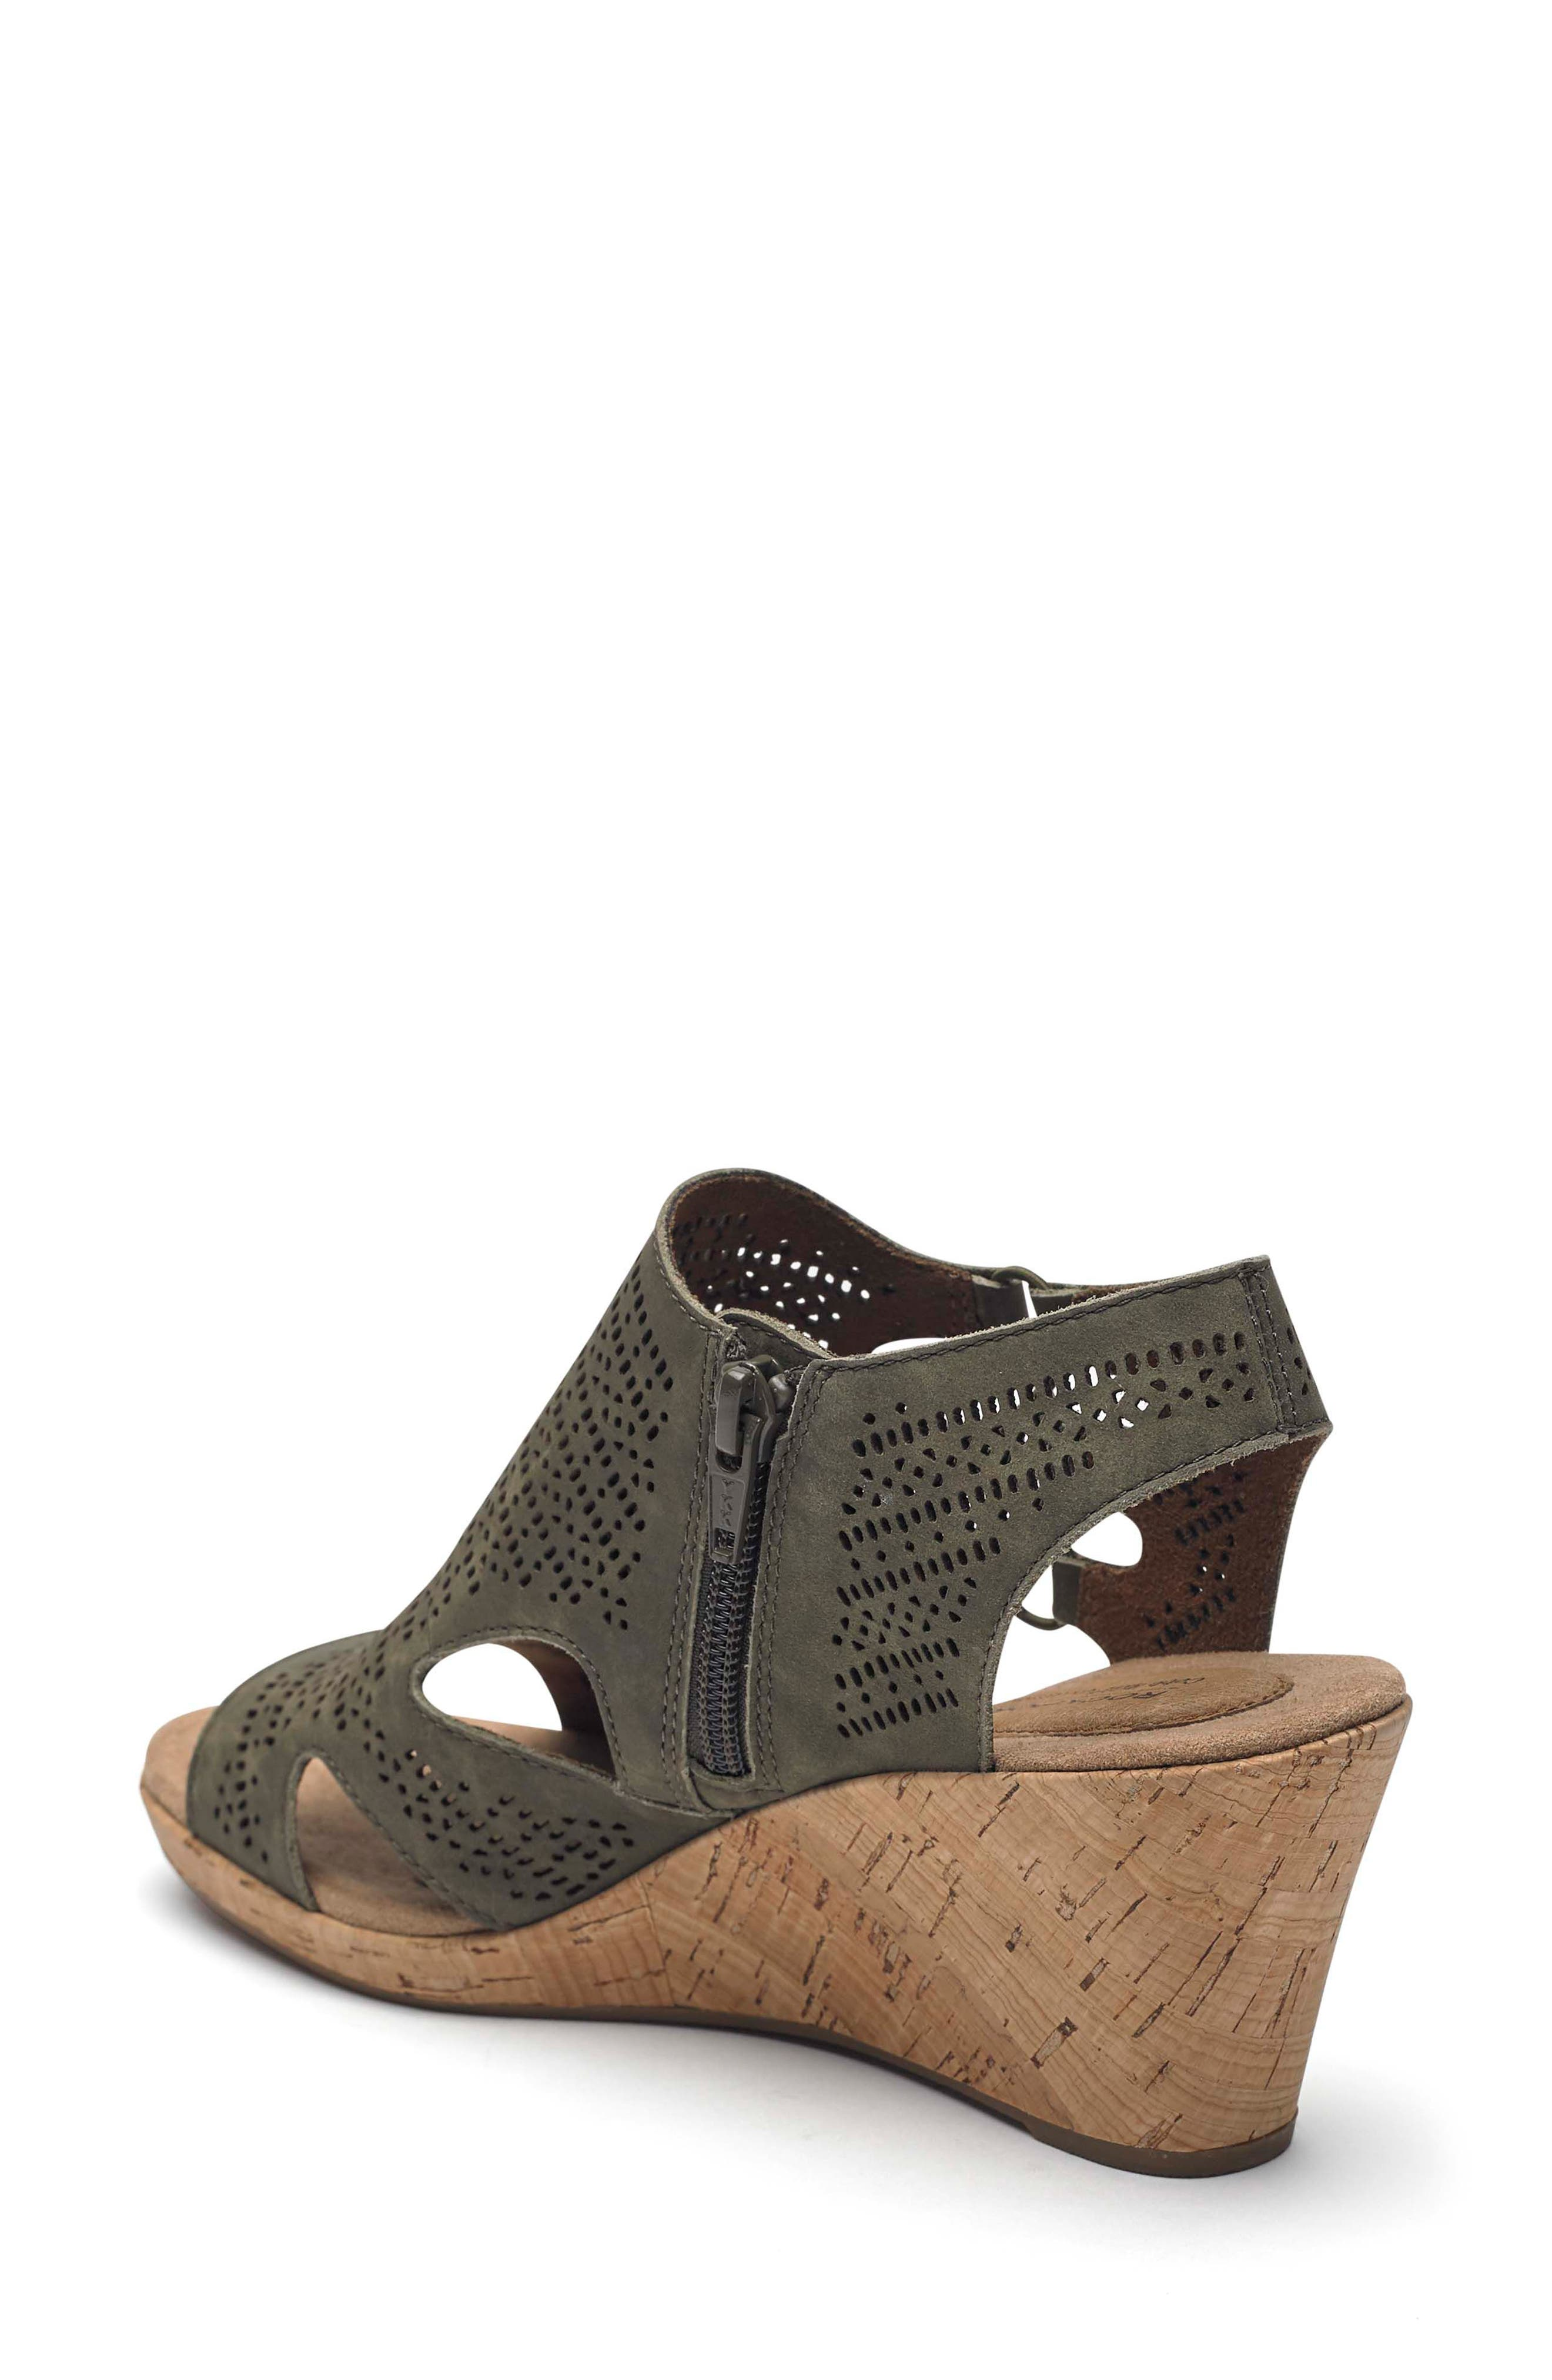 Janna Perforated Wedge Sandal,                             Alternate thumbnail 2, color,                             Green Nubuck Leather